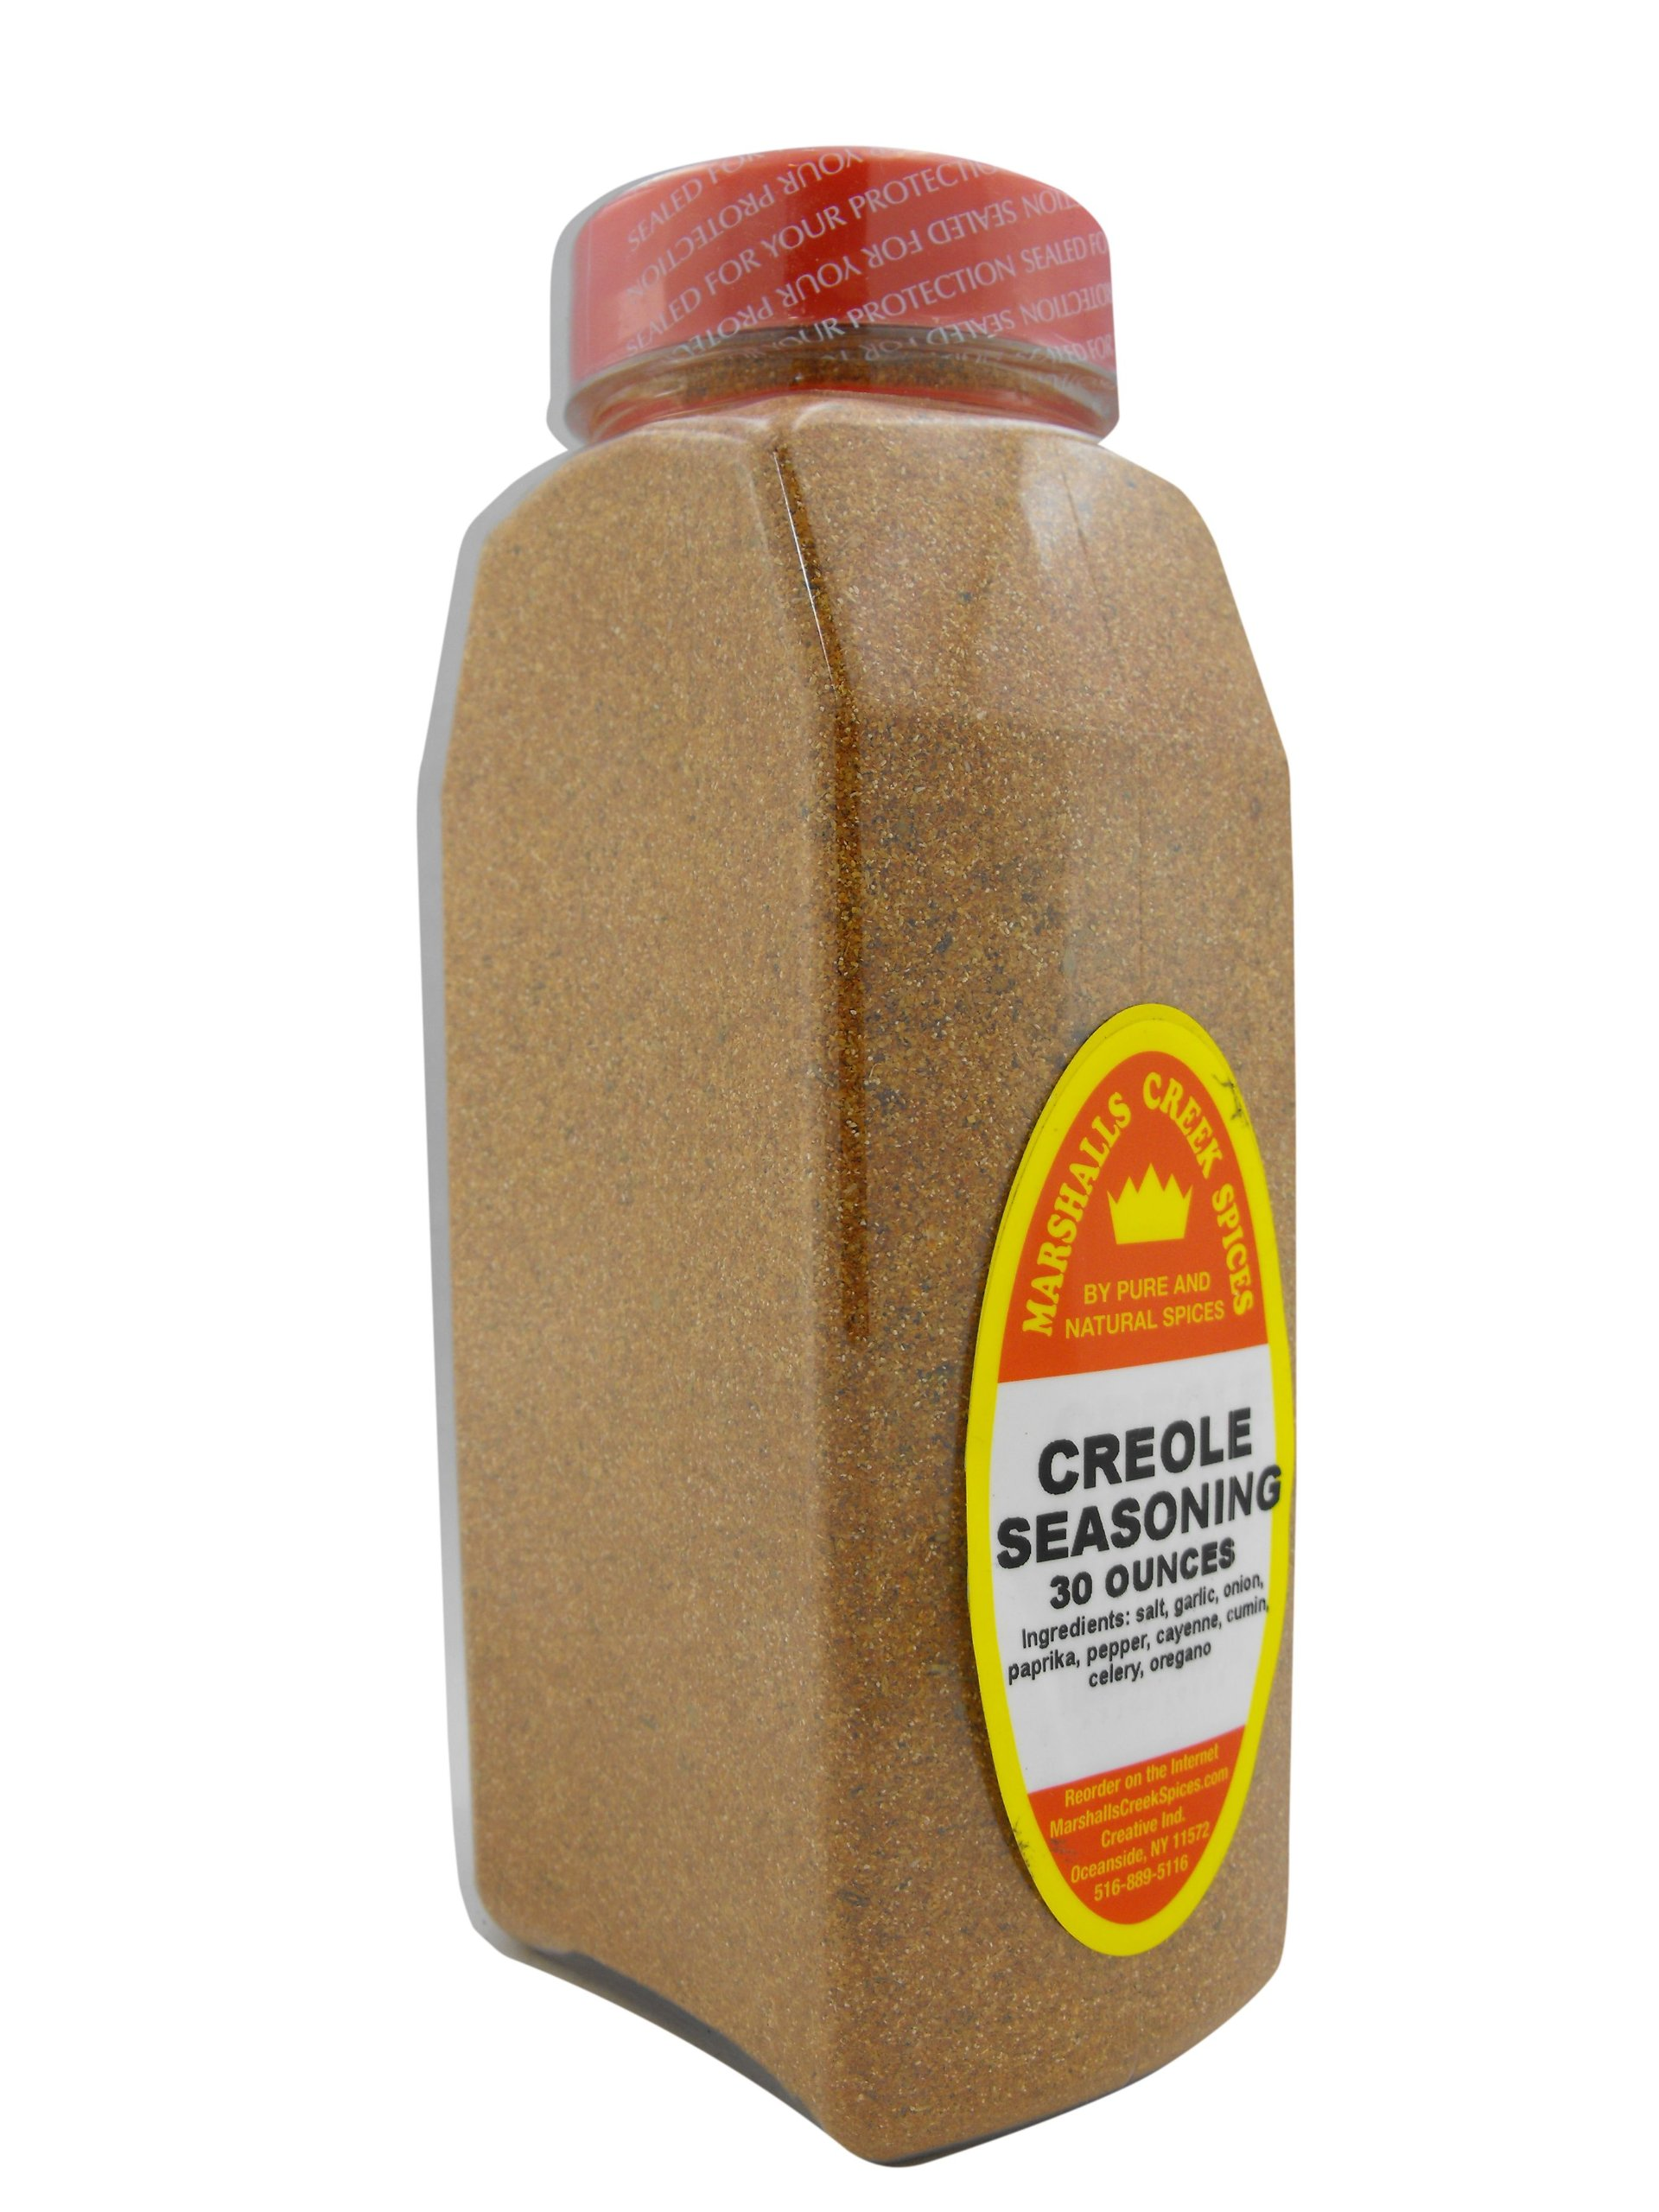 XL Size Marshalls Creek Spices Creole Seasoning, 30 Ounce